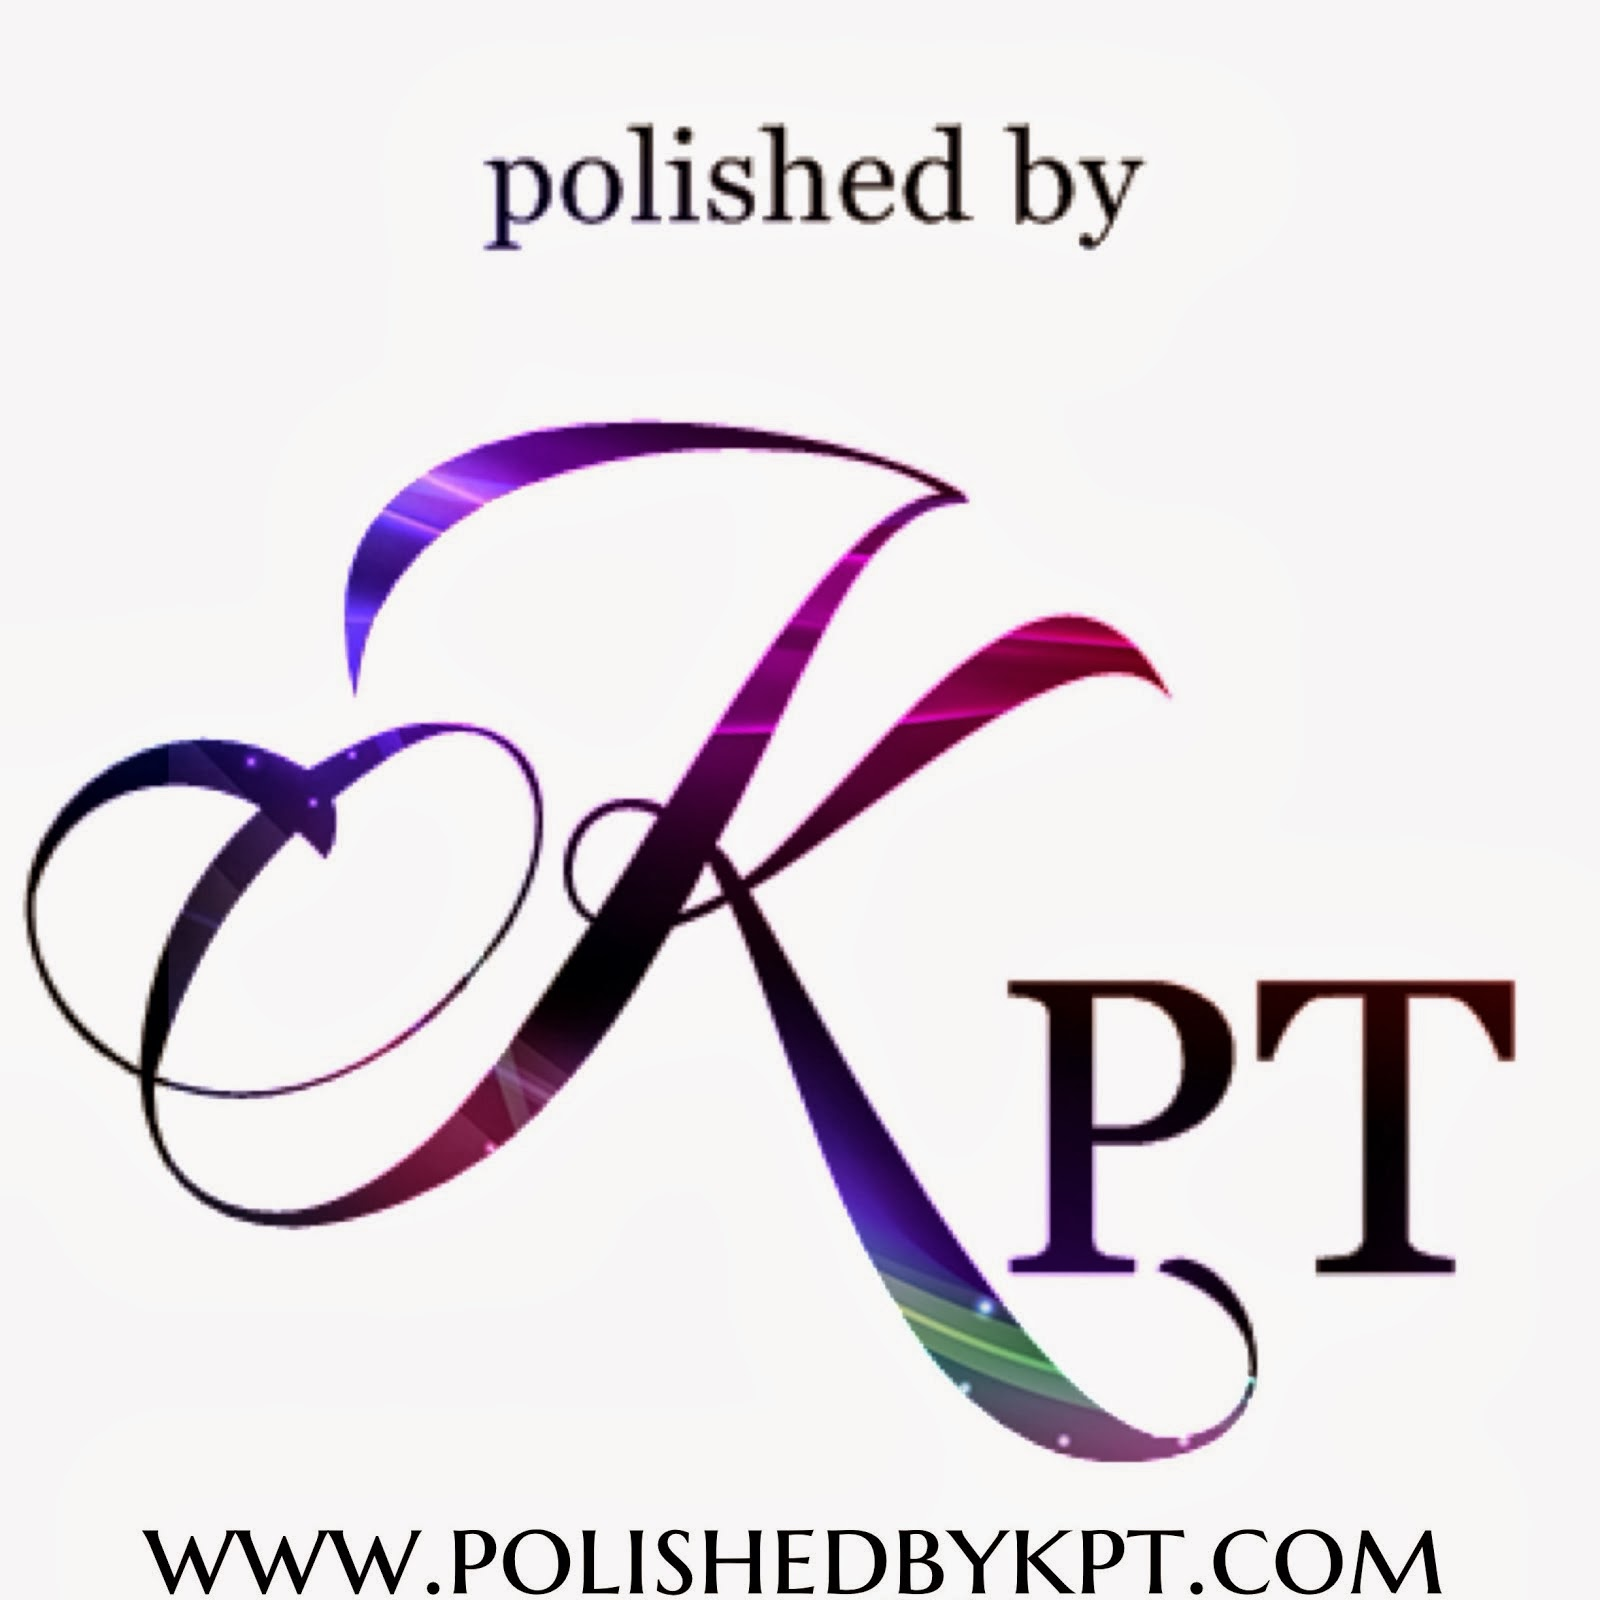 Polished by KPT